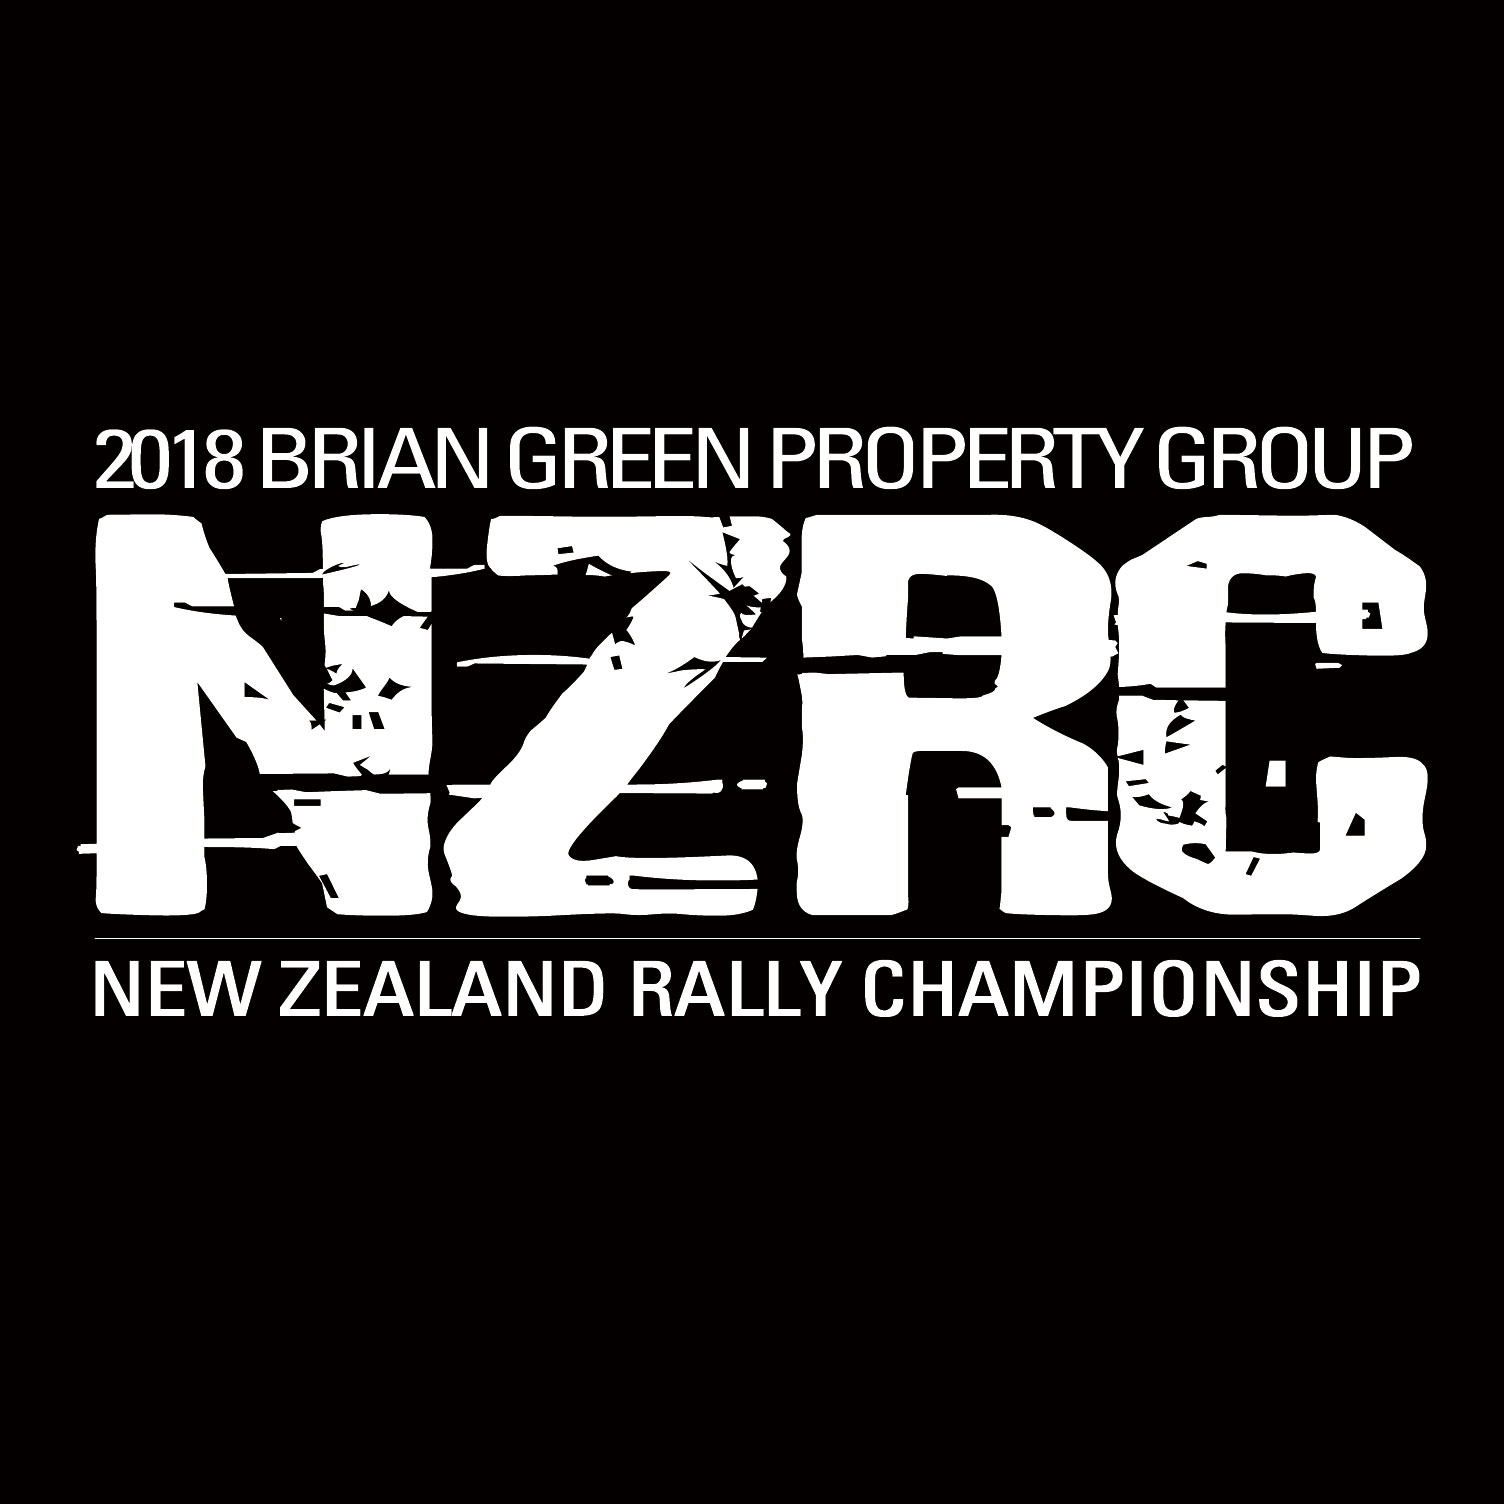 Five minutes with Crunch Bennett | :: Brian Green Property Group New Zealand Rally Championship ::